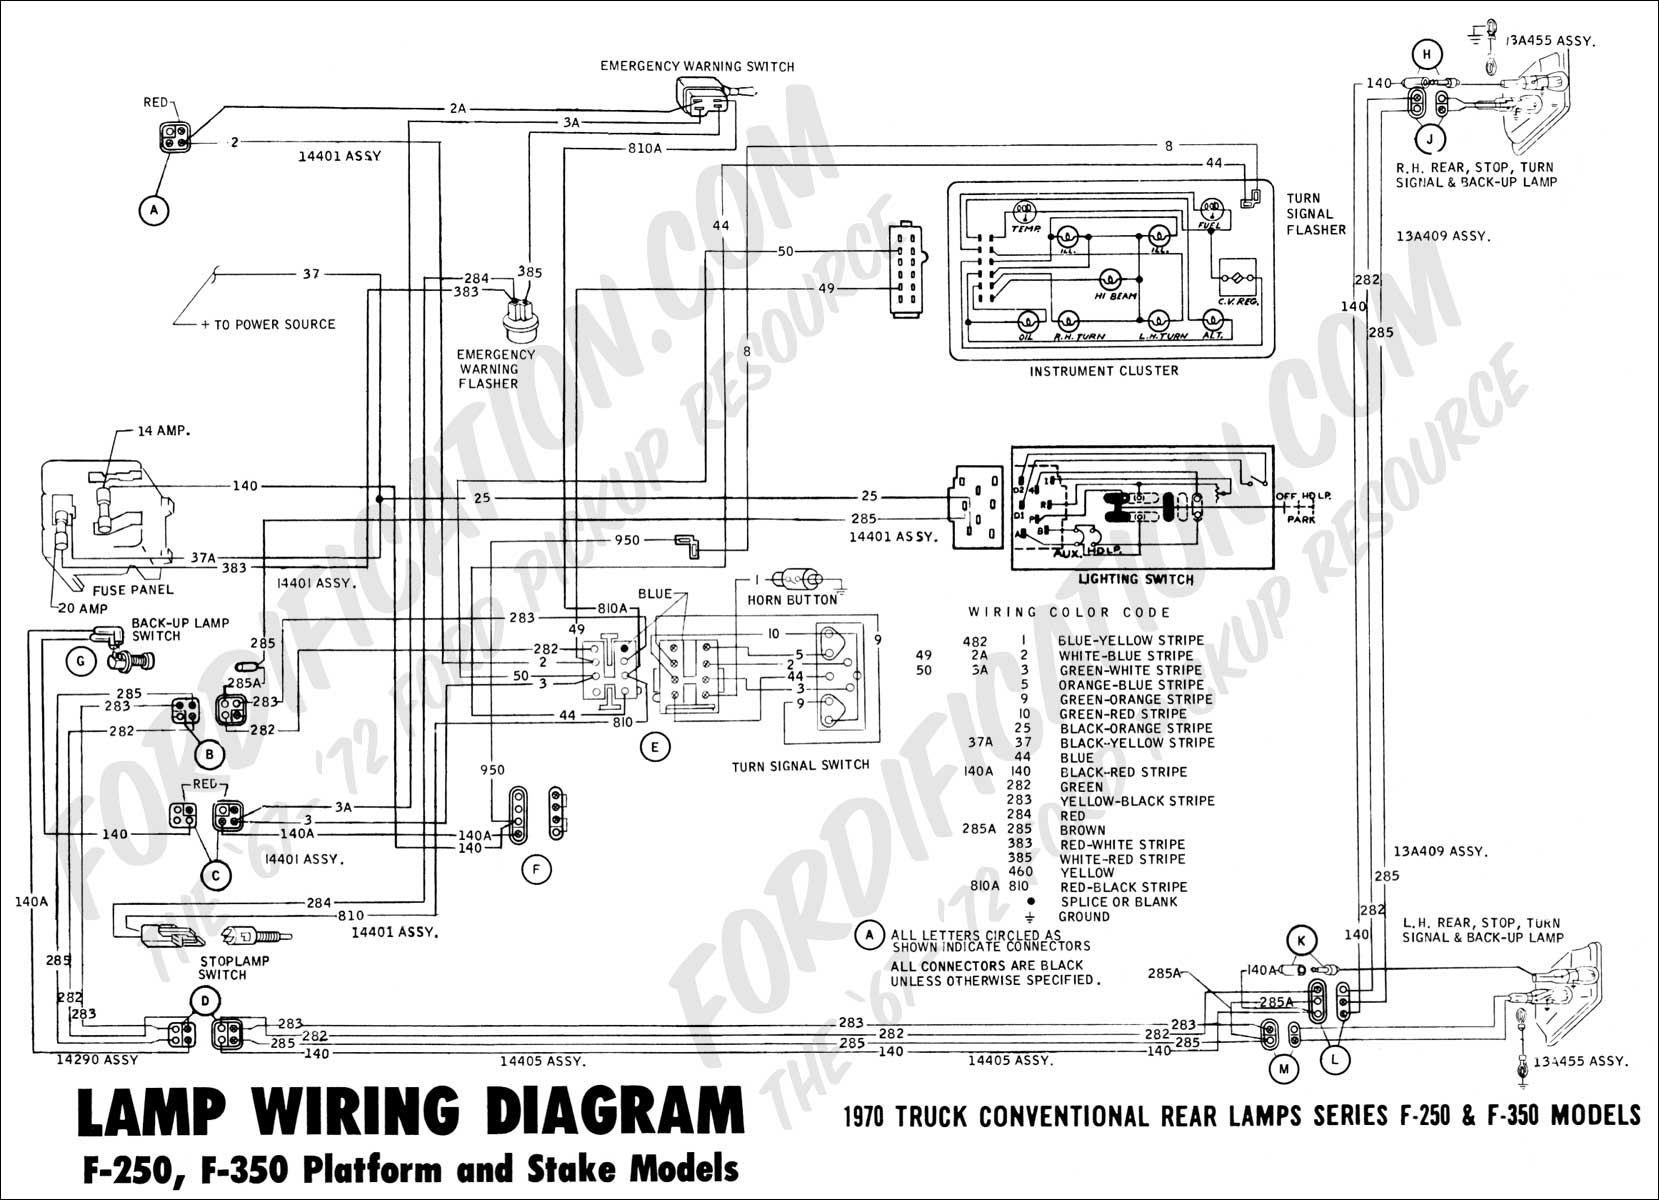 Wiring Diagram F Rearl s on 1967 mustang ignition wire colors